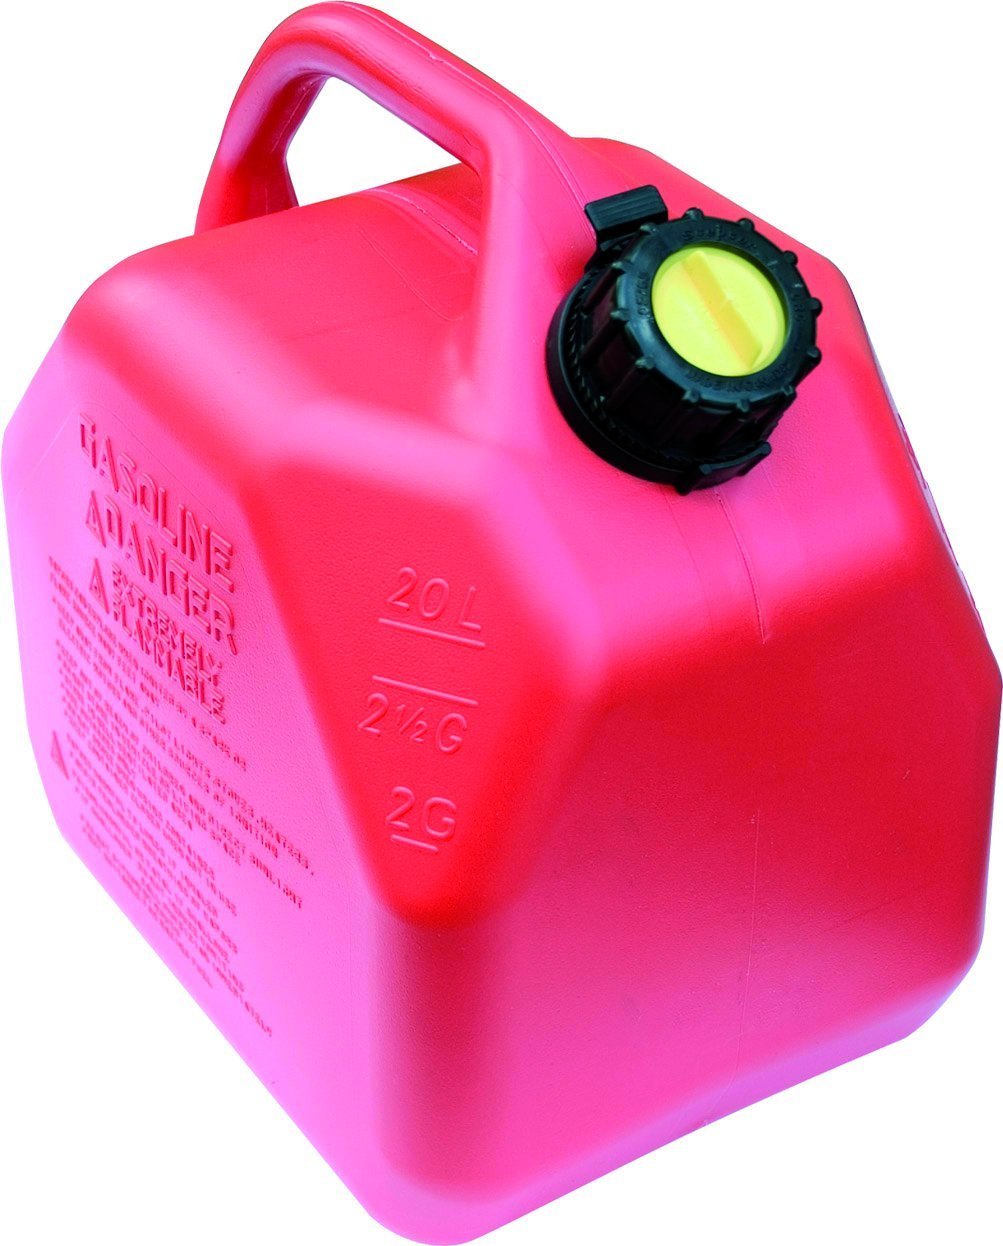 Scepter 20 Liter/5.3 Gallon Fuel Can, Red 007622